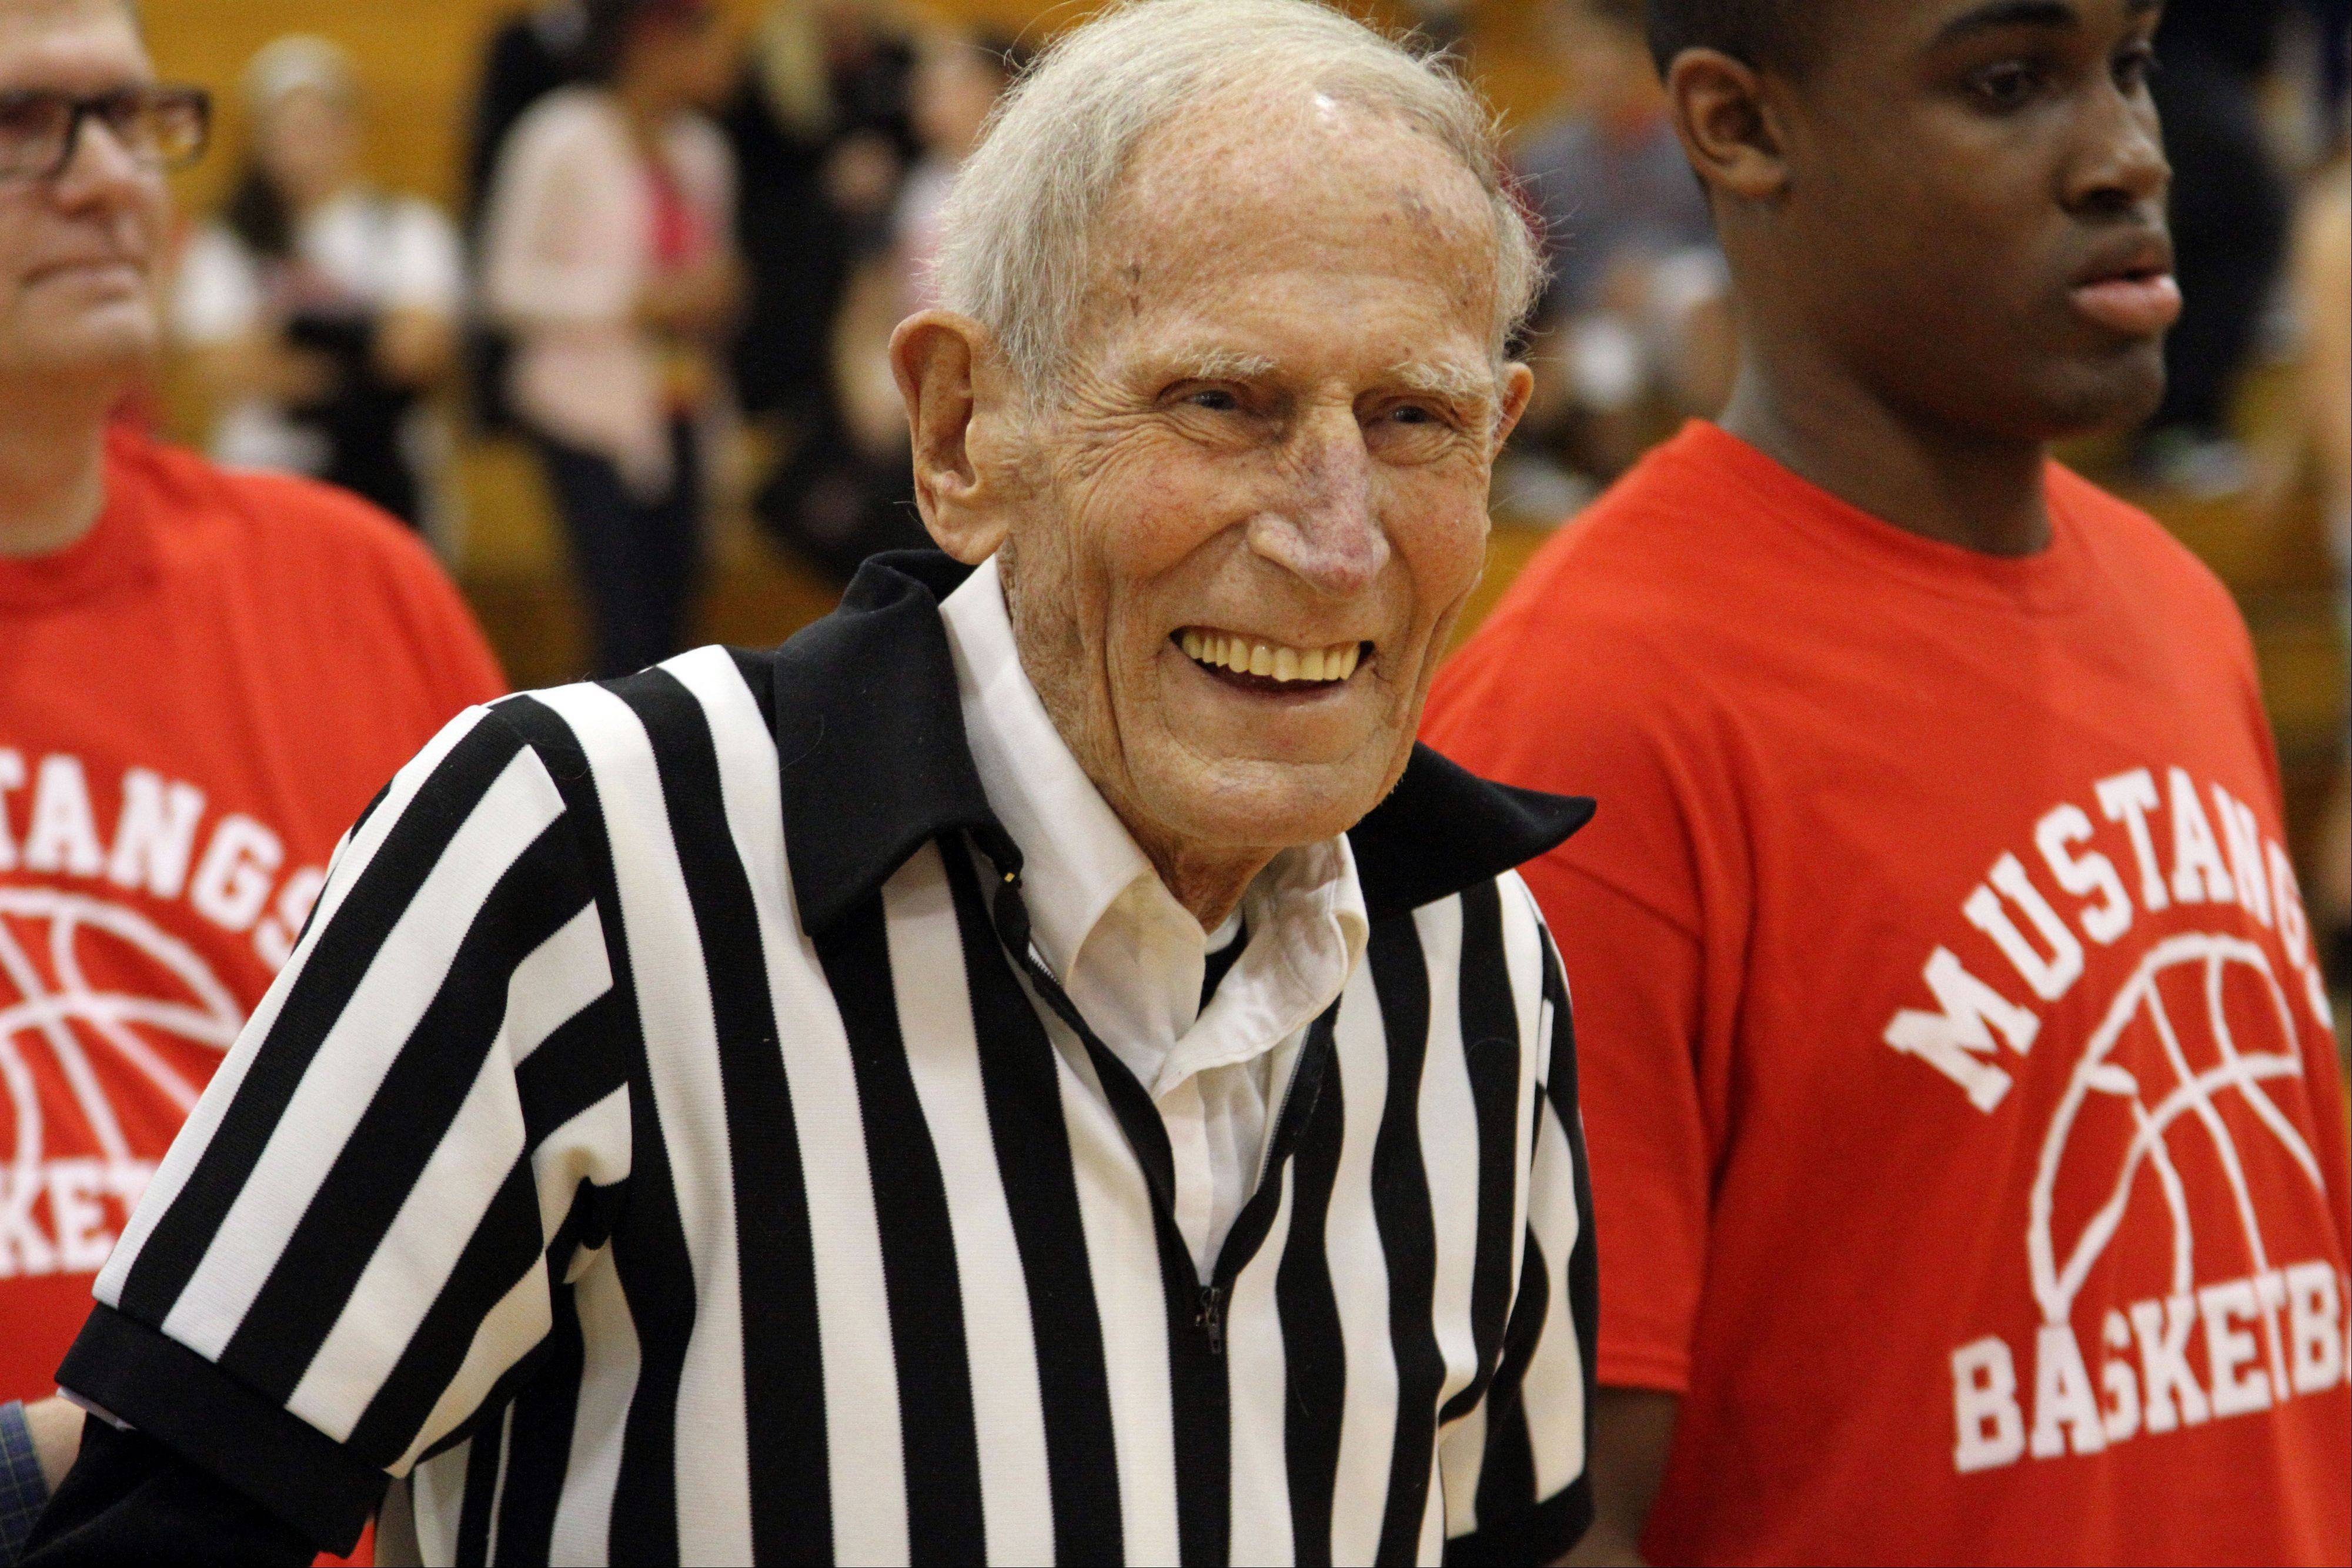 Memorial service Saturday for longtime Mundelein High School scorekeeper